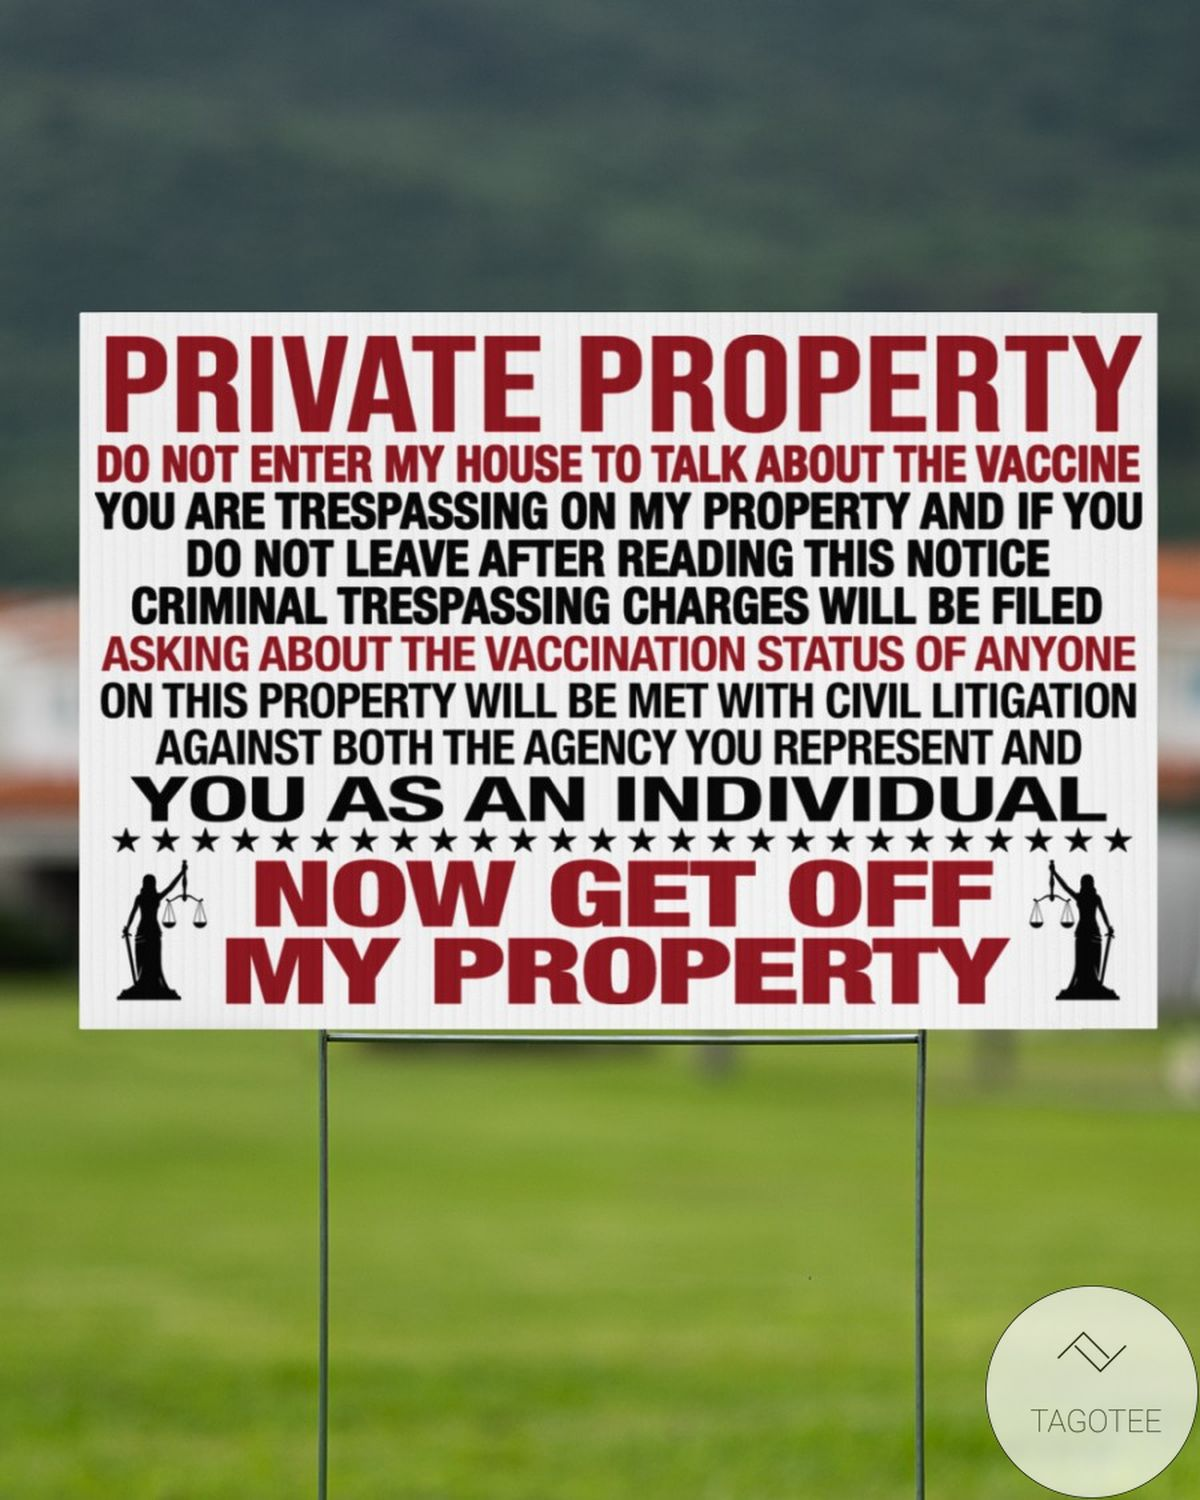 Private Property Do Not Enter My House To Talk About The Vaccine Door Knocker Warning Yard Signsc